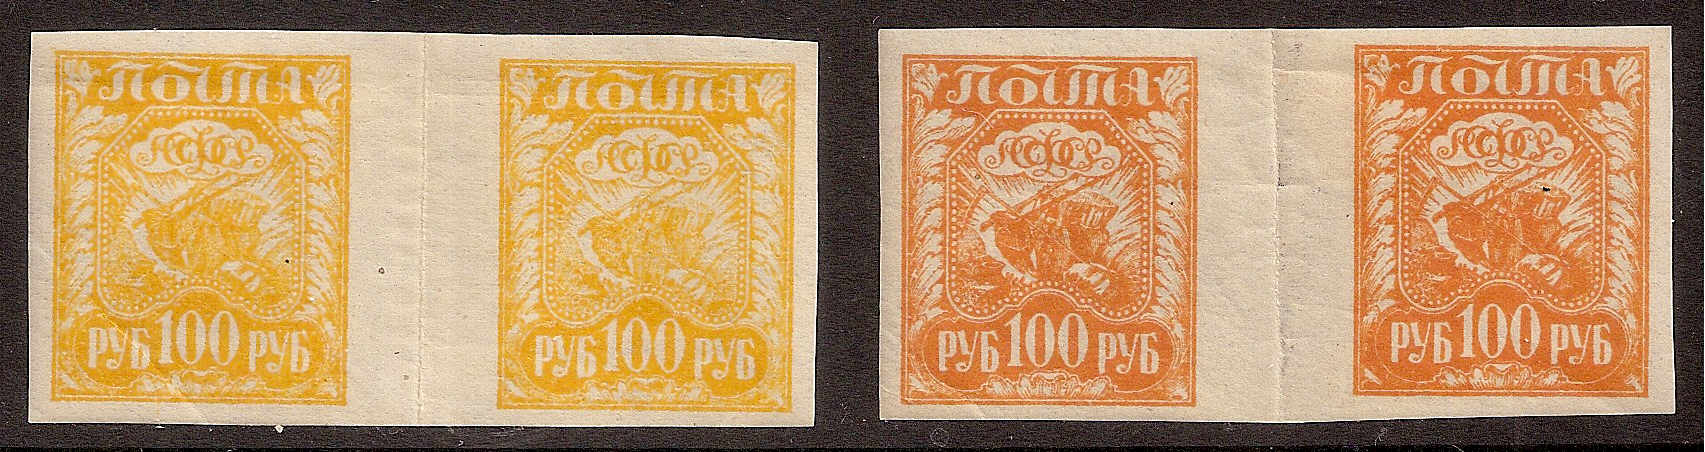 Russia Specialized - Soviet Republic 1921 First definitive issue Scott 181 Michel 156x